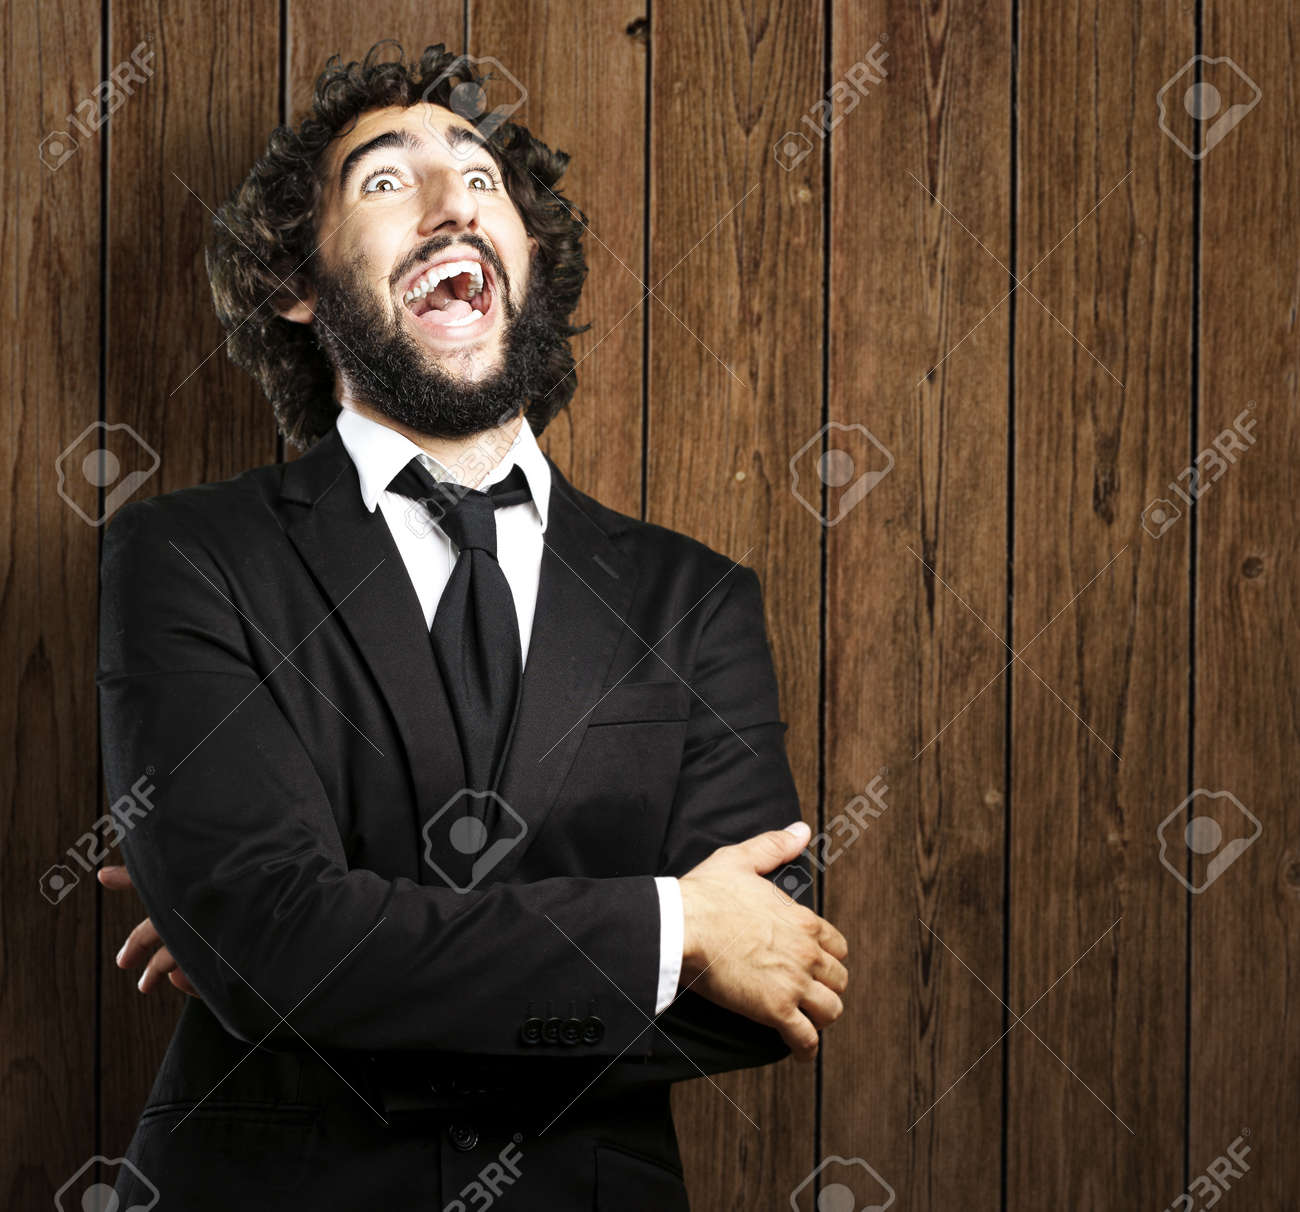 portrait of business man laughing against a wooden wall Stock Photo - 13156633